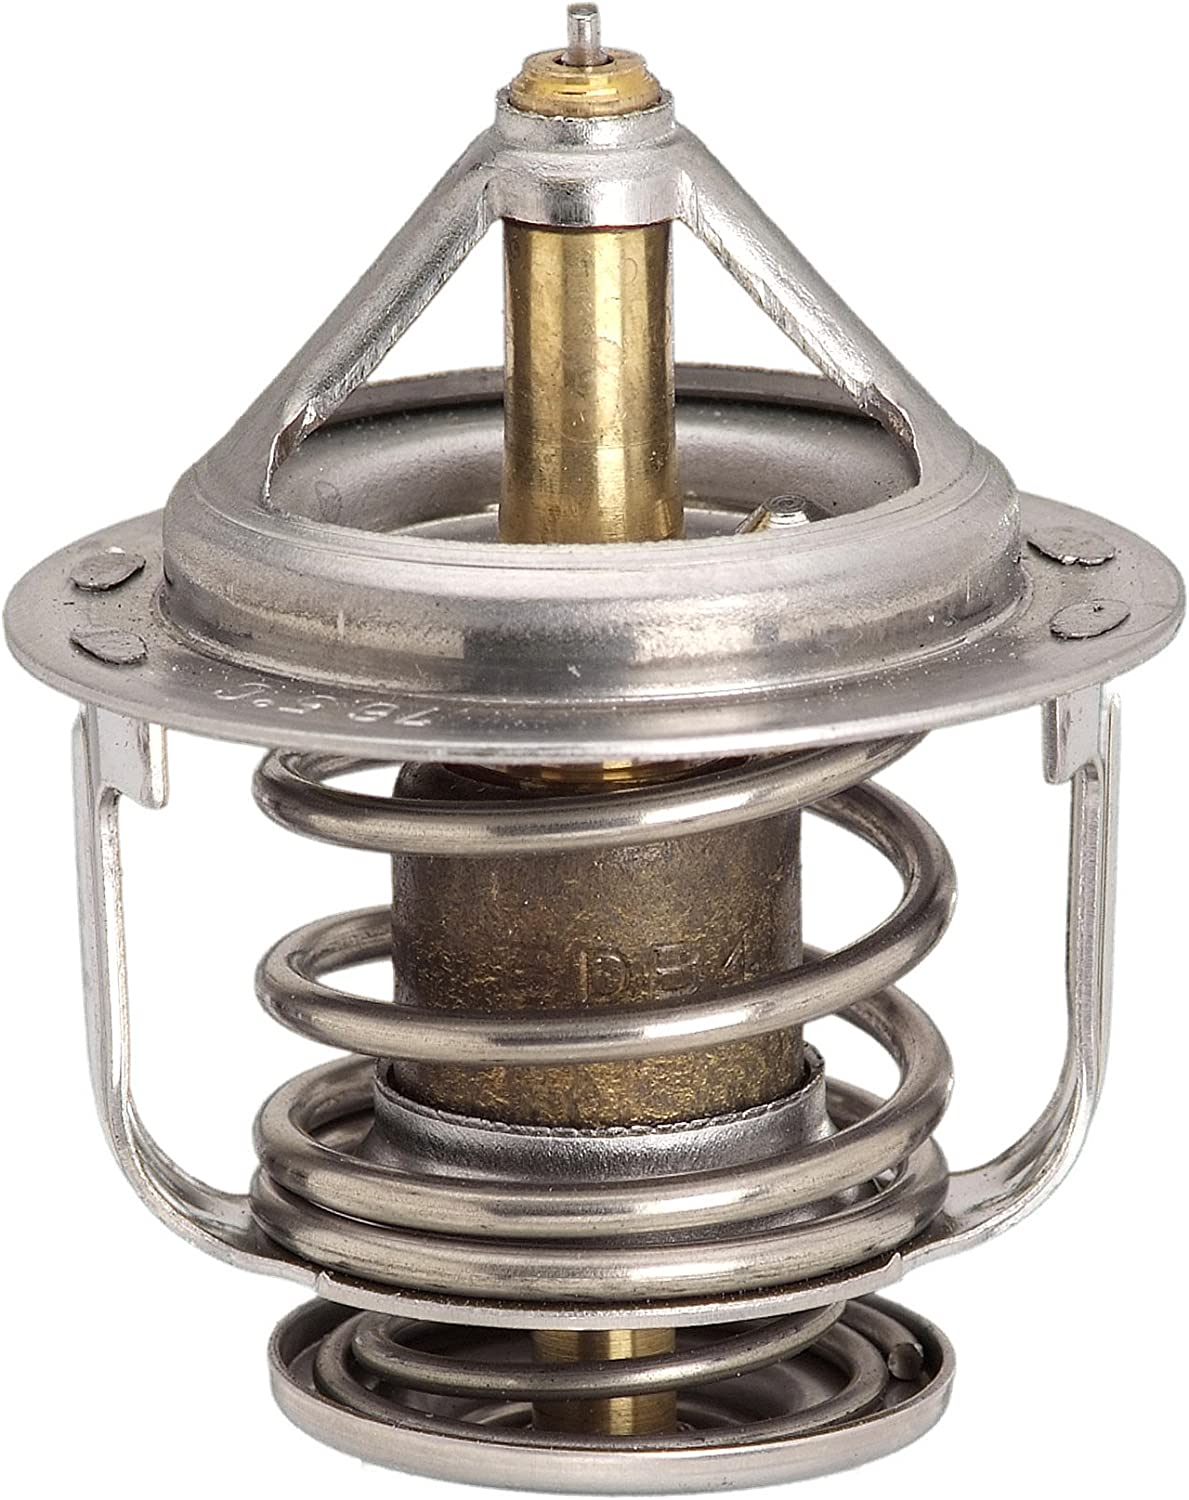 180 Degrees Fahrenheit Opening Temperature Stant 48588 OE Equivalent Thermostat